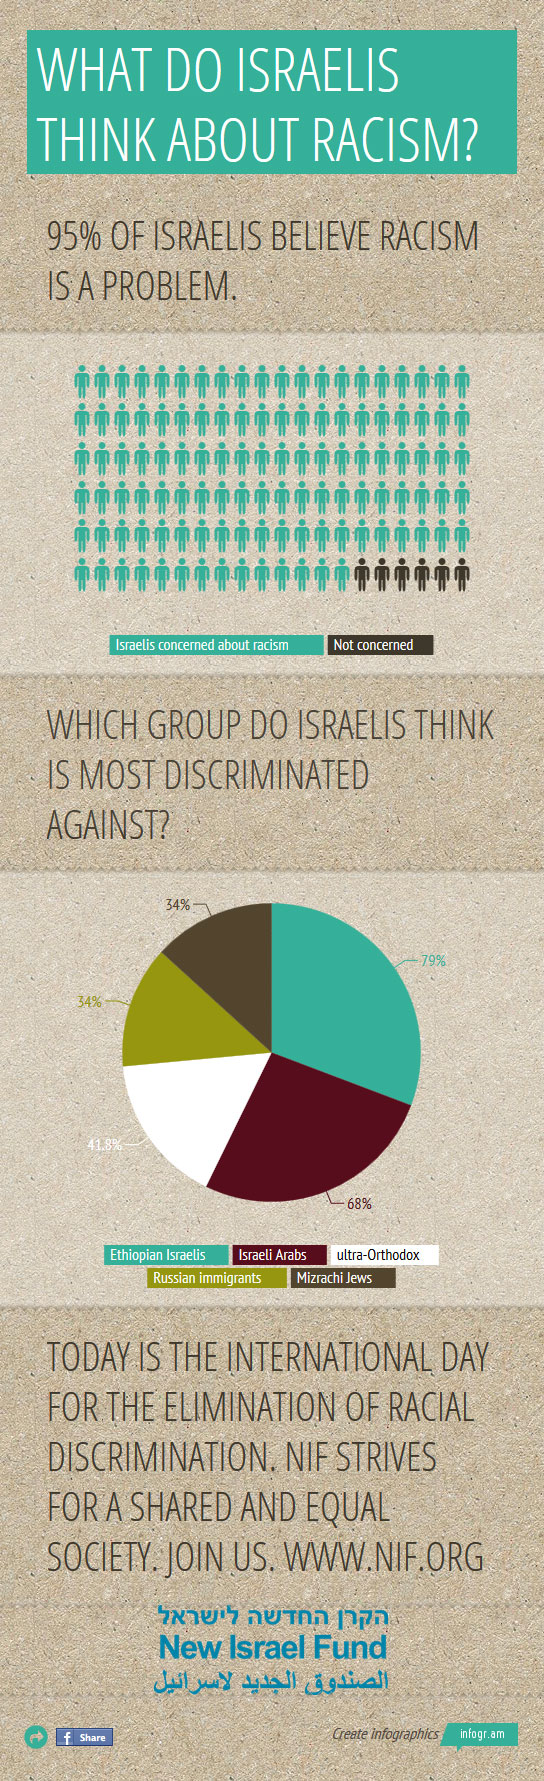 WhatDoIsraelisThinkAboutRacism-Full-Infographic